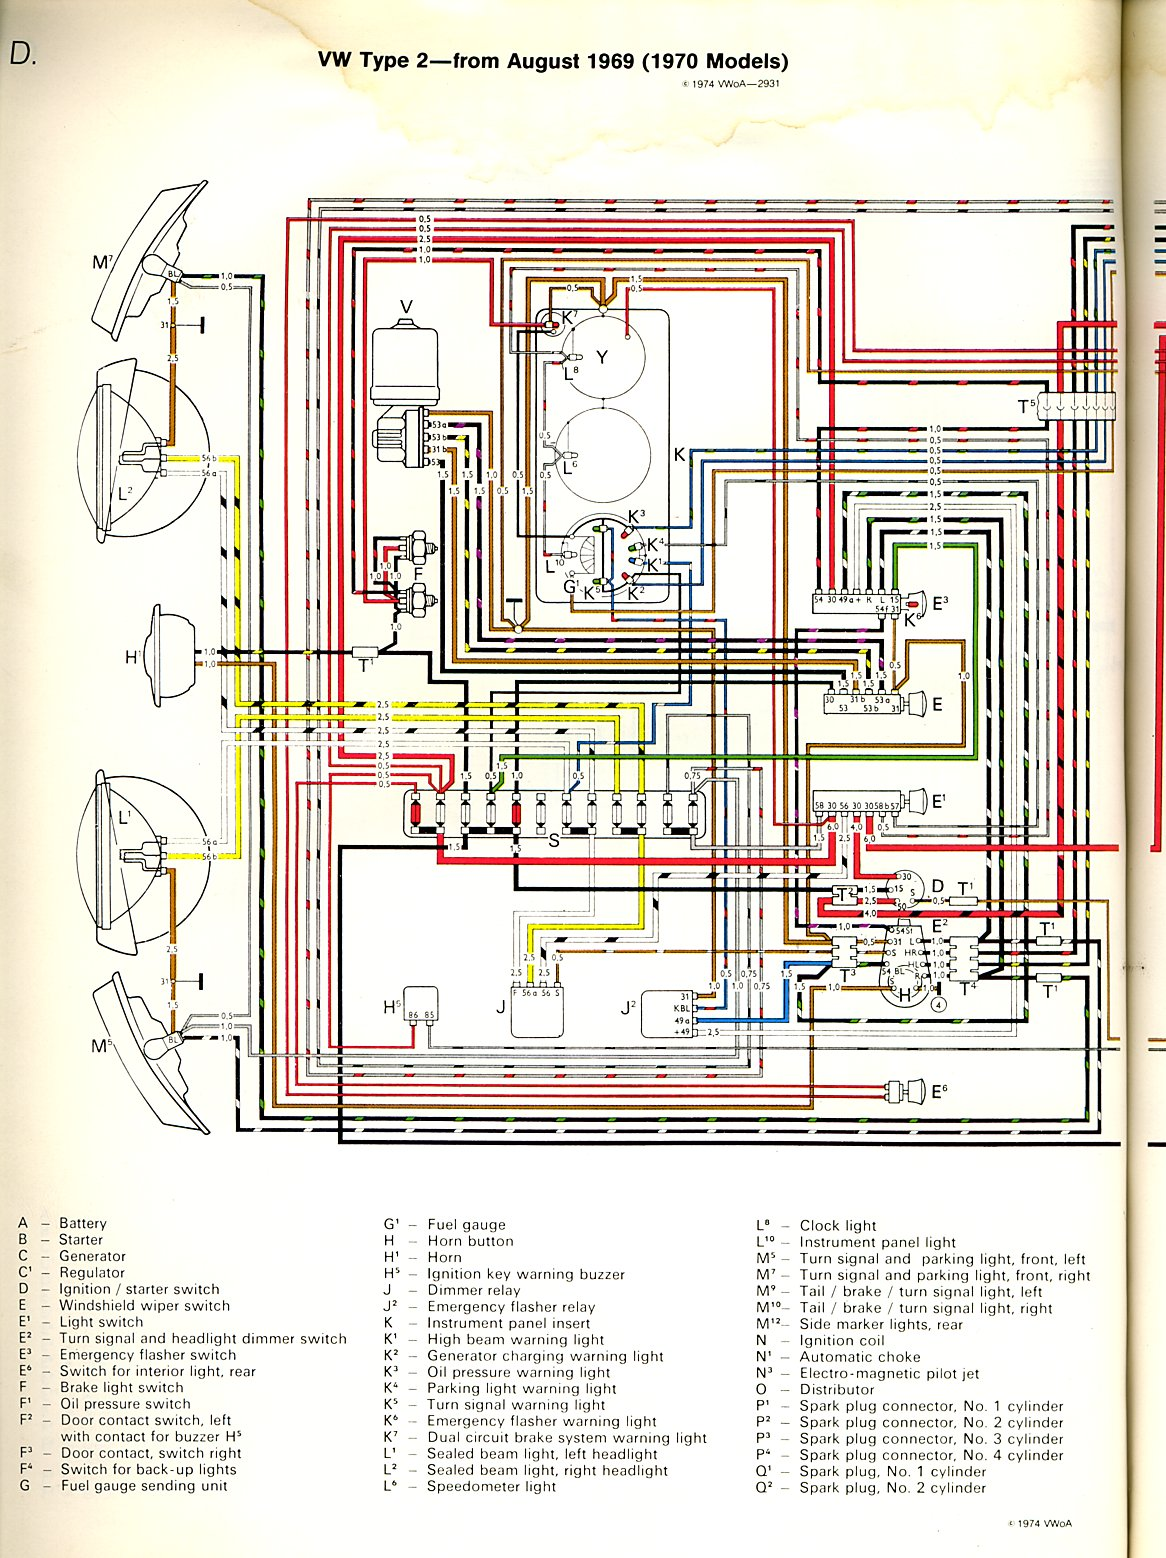 baybus_70a Universal Power Window Wiring Diagram on kenworth fuse box diagram, universal electric window switch, 1989 volvo 740 relay diagram, 1976 ford brake switch diagram, 1991 f150 door lock diagram, ignition switch diagram, universal ultra power, reverse polarity switch diagram, 85 c10 power window diagram, car power window diagram, universal power window regulator, mercedes power lock diagram, universal street rod wiring harness, vcr antenna switch circuit diagram, power window electrical diagram, 84 chevy silverado window switch diagram, universal switch finder power, 88 c10 power window diagram, universal window switch kit, power window switch diagram,